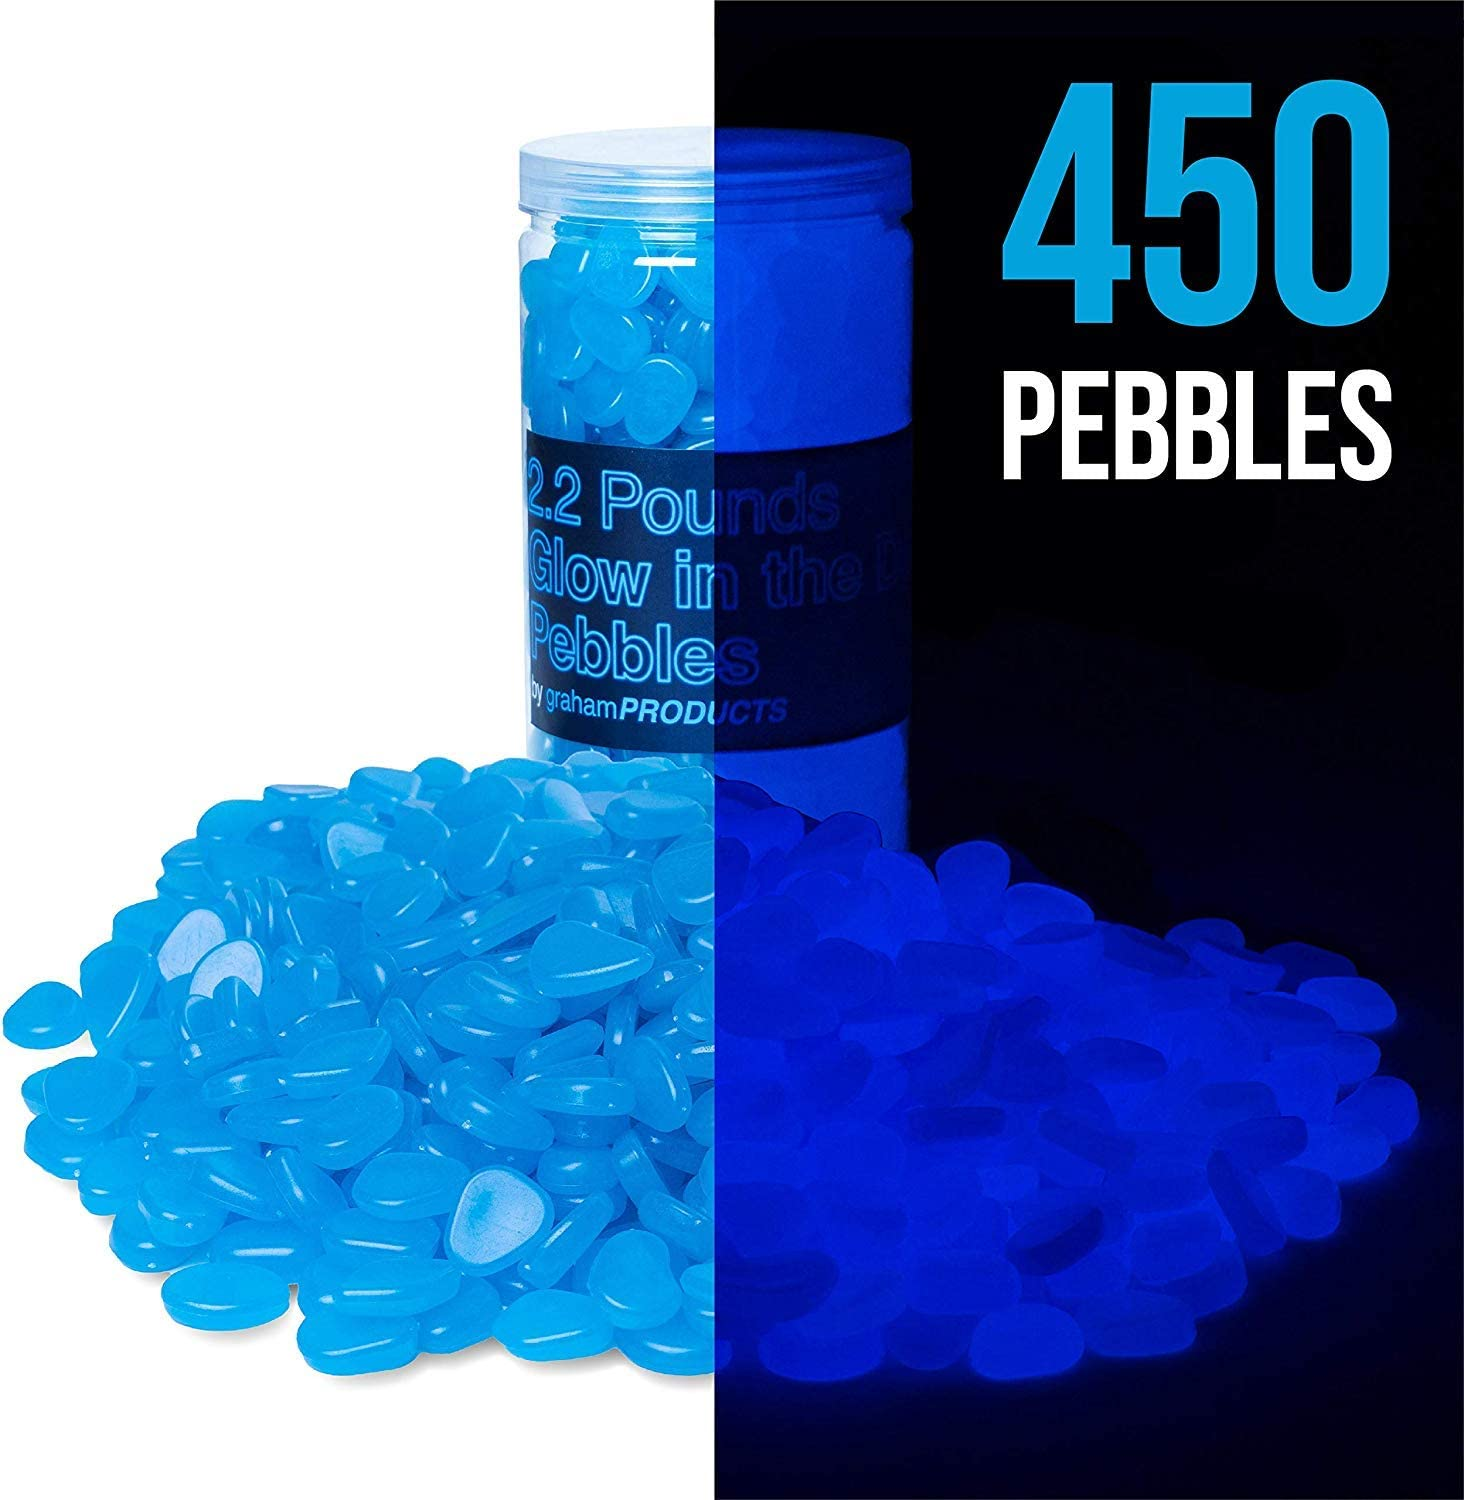 Graham Products 450 pcs, 2.2 lbs Glow in The Dark Pebbles (Blue) - Indoor Outdoor Zen Garden Stones, Moonlight Yard Plant Decorations, Fish Tank Aquarium Rocks, Solar Backyard LED Patio Decor